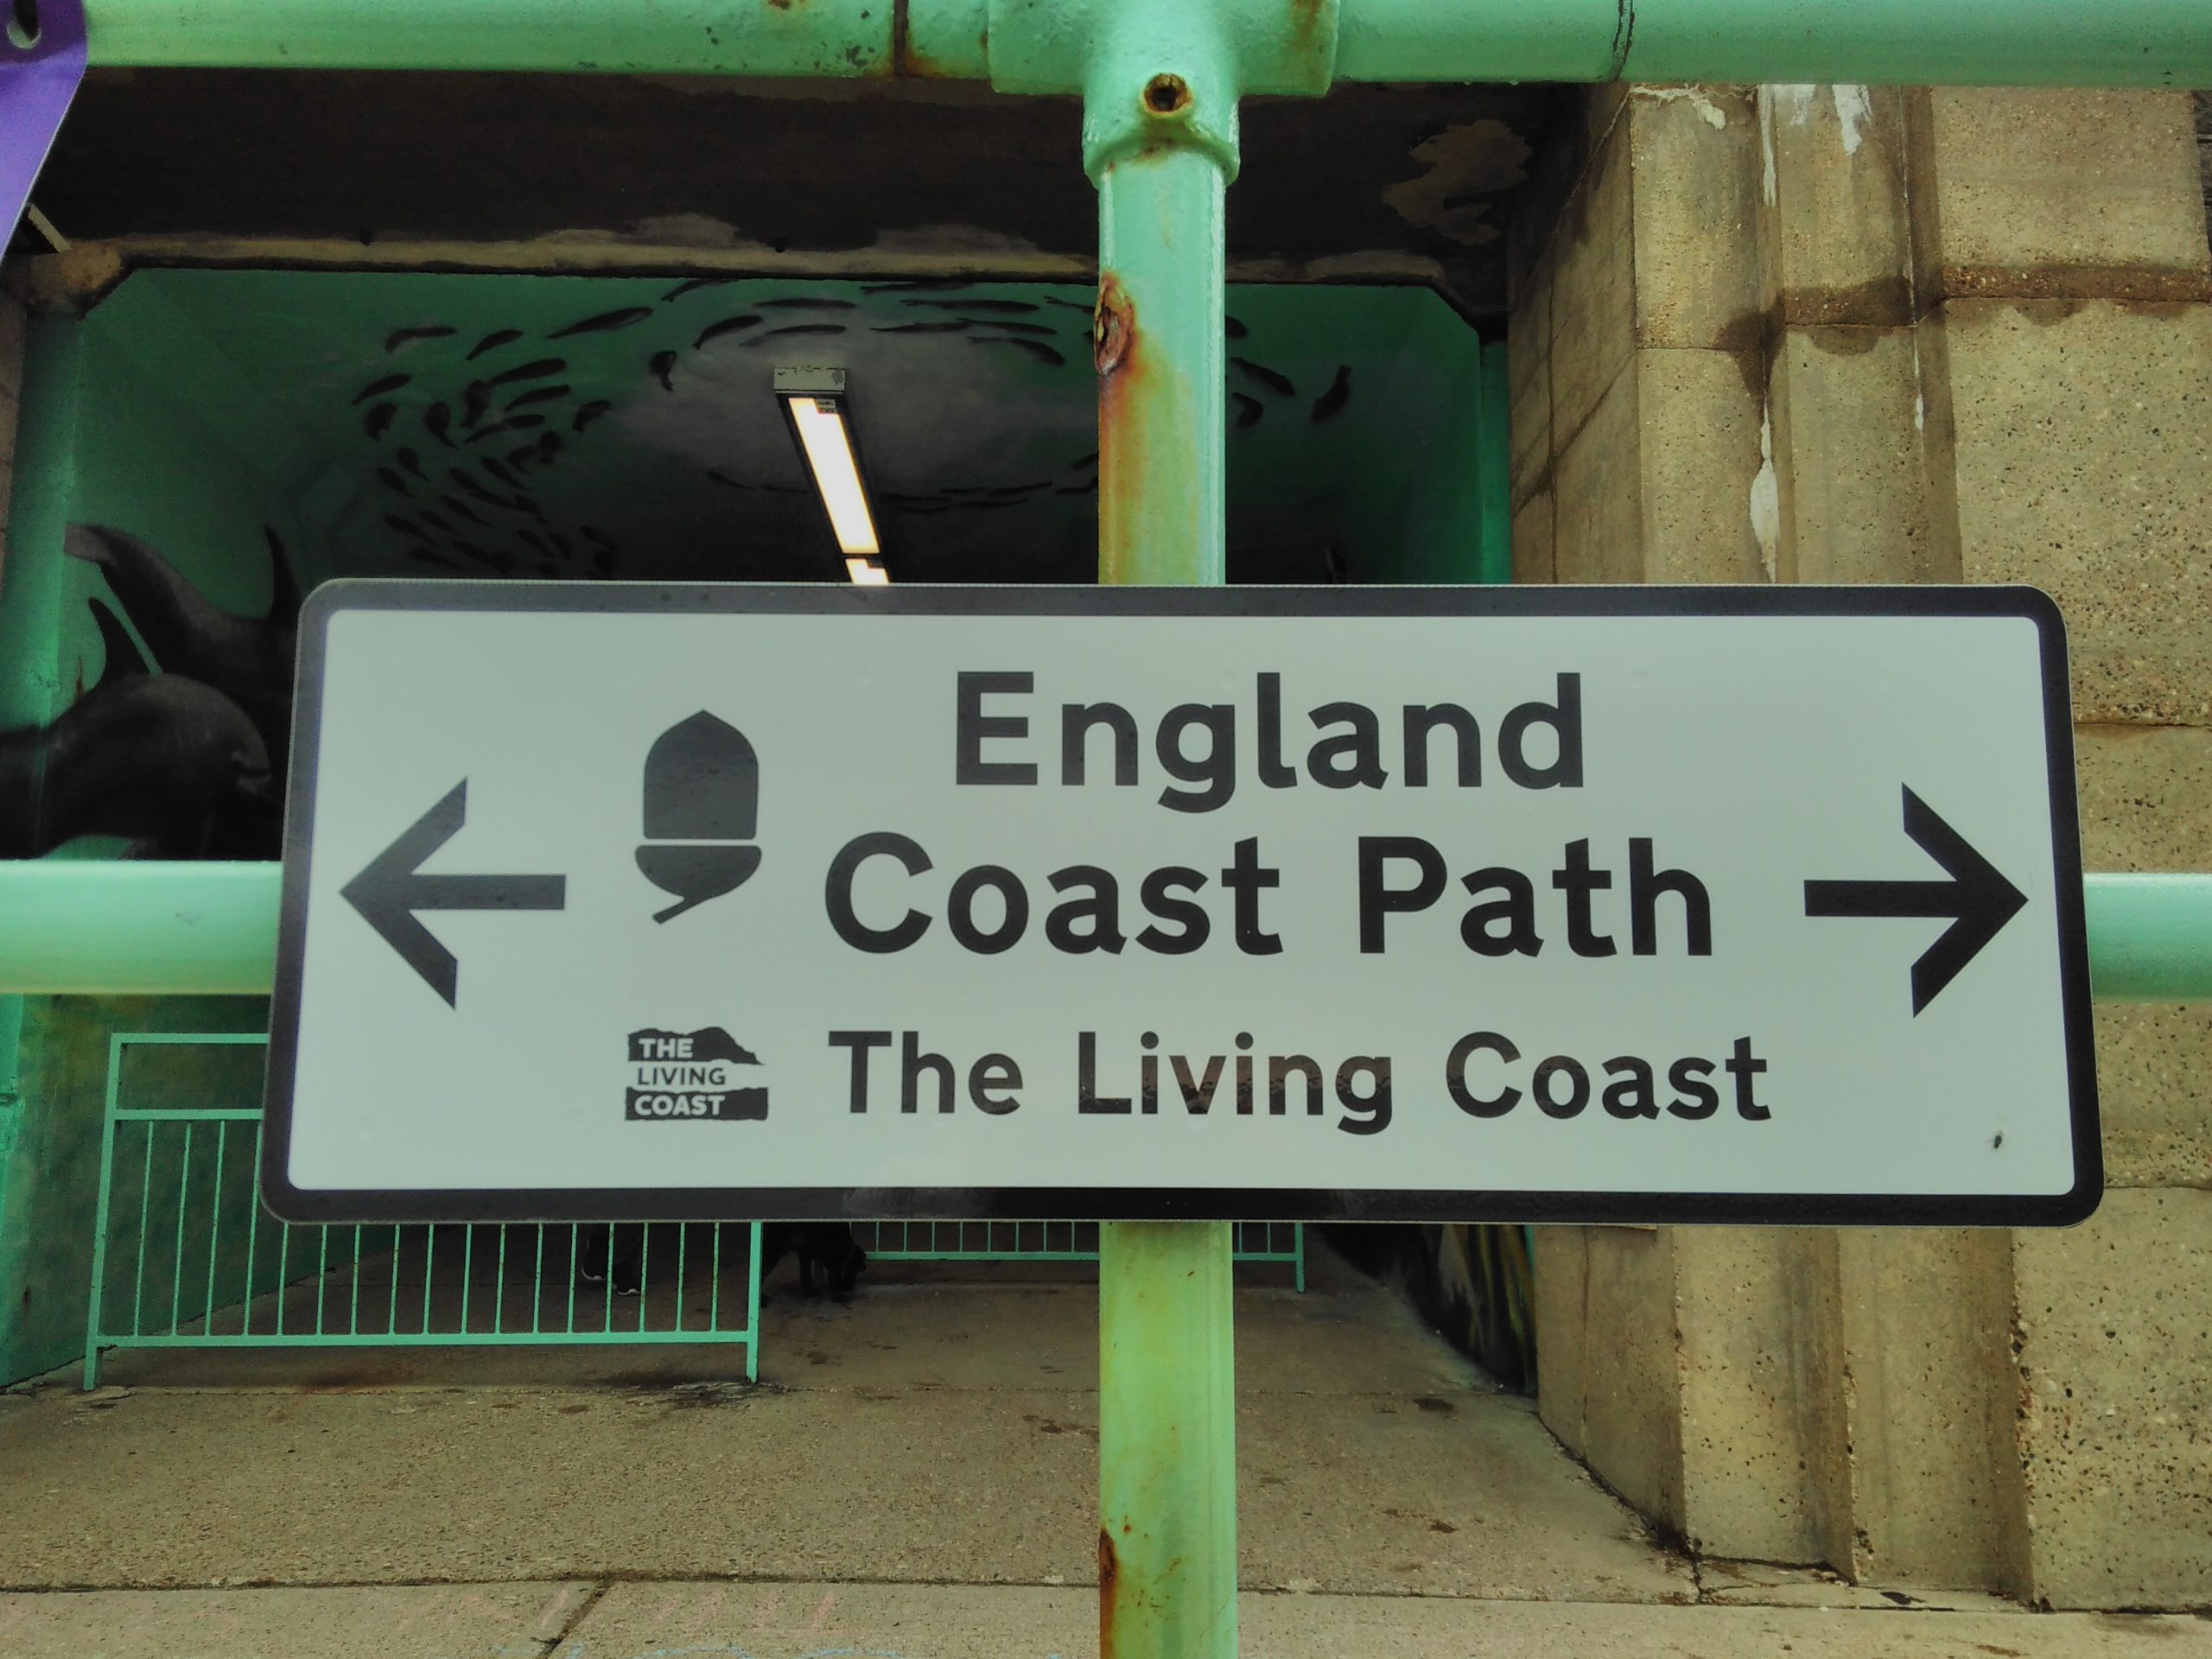 One of the sign for the England Coast Path on the seafront of The Living Coast